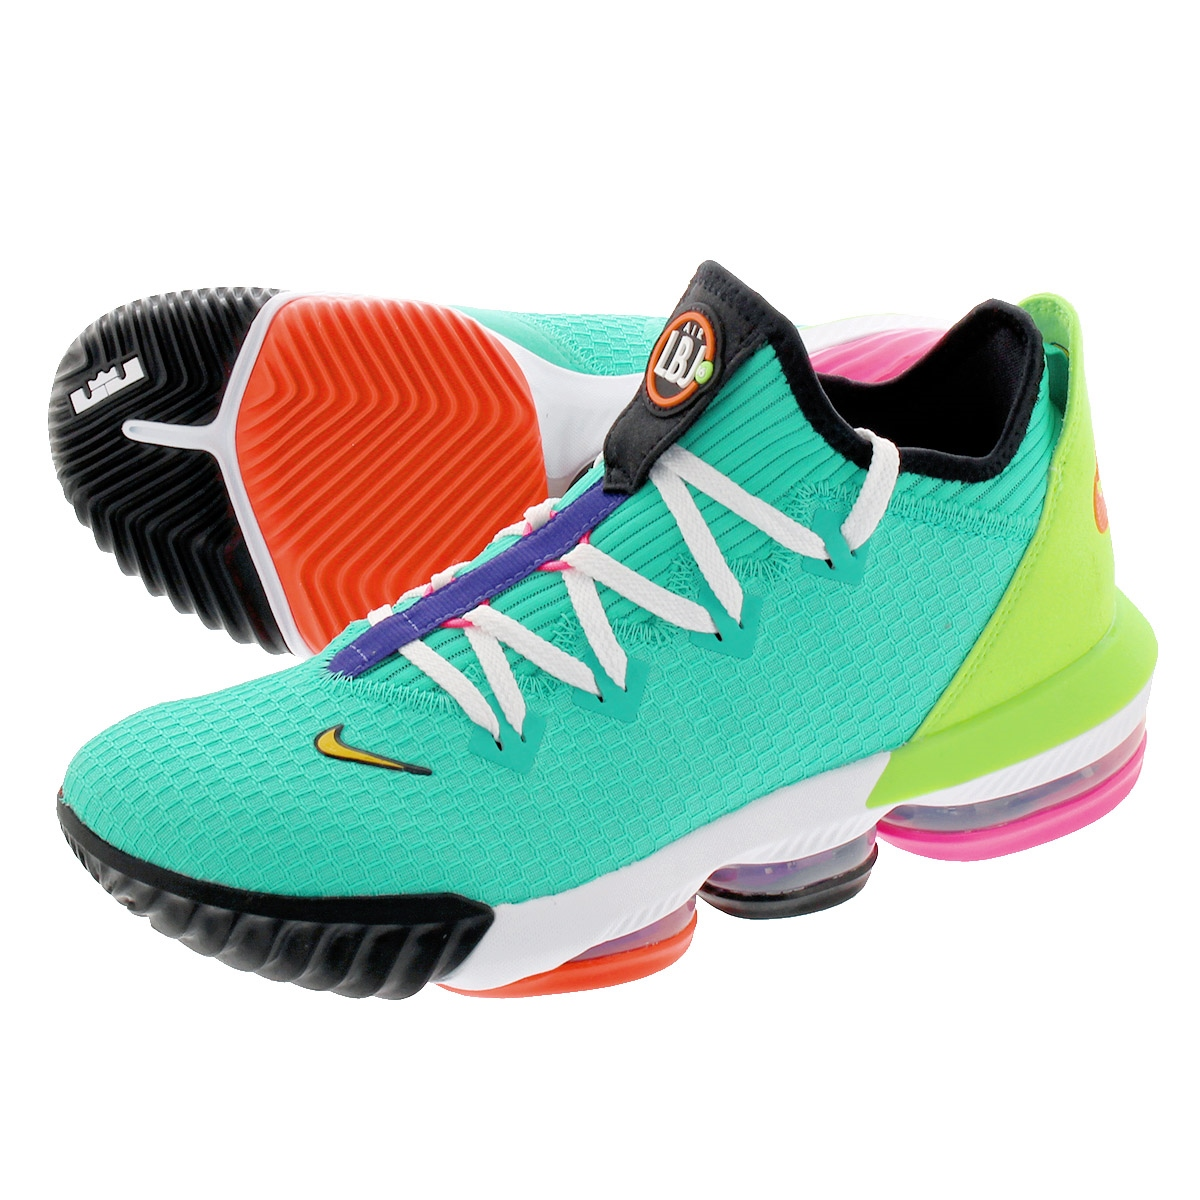 new products 13370 503ff NIKE LEBRON 16 LOW Nike Revlon 16 low HYPER JADE/TOTAL ORANGE/ELECTRIC  GREEN/BLACK ci2668-301